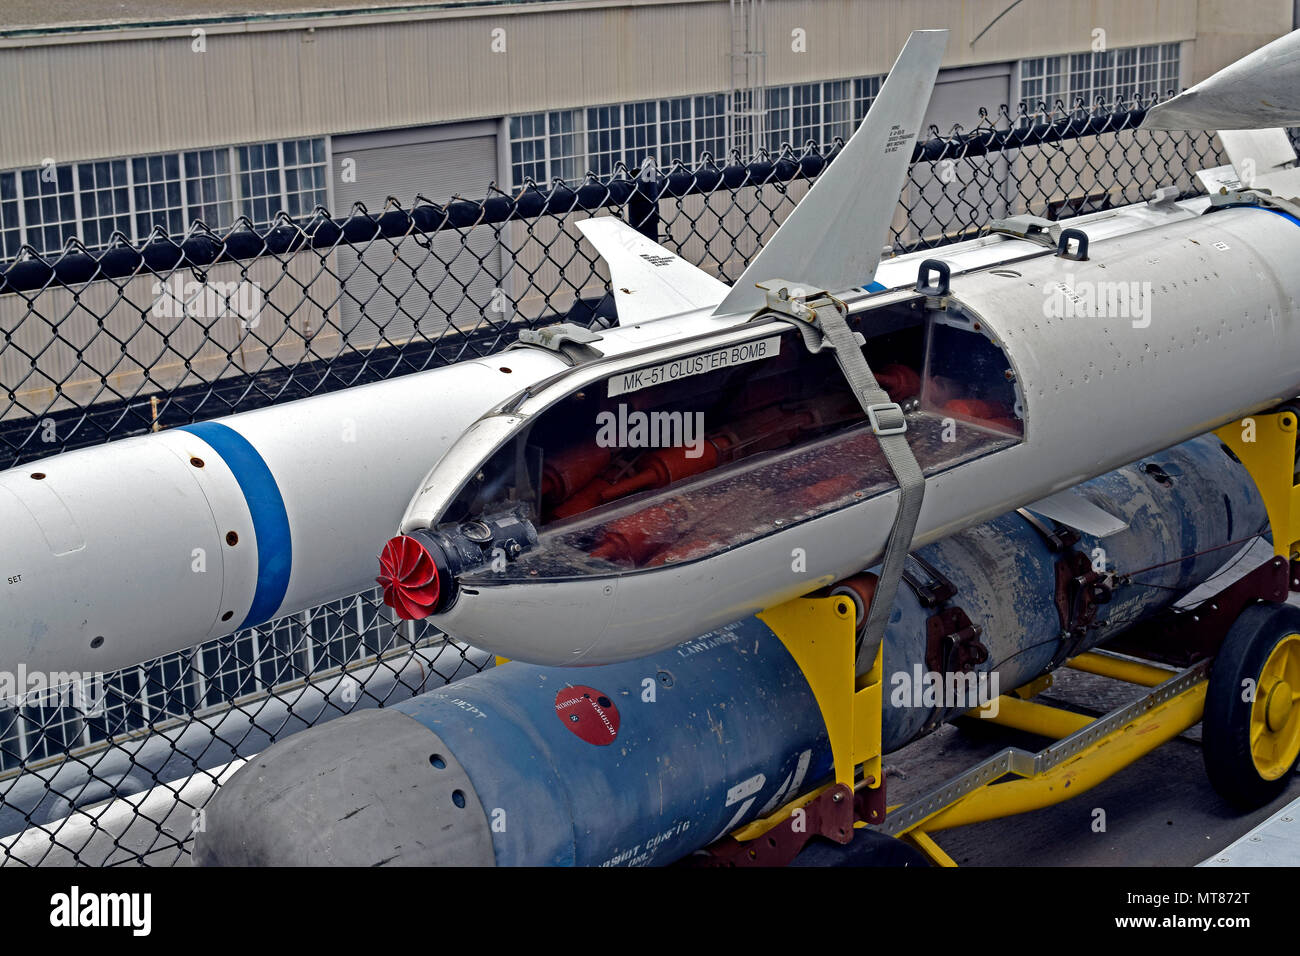 MK-51, cluster bomb display at the USS Midway Museum, aircraft Carrier, San Diego, California - Stock Image